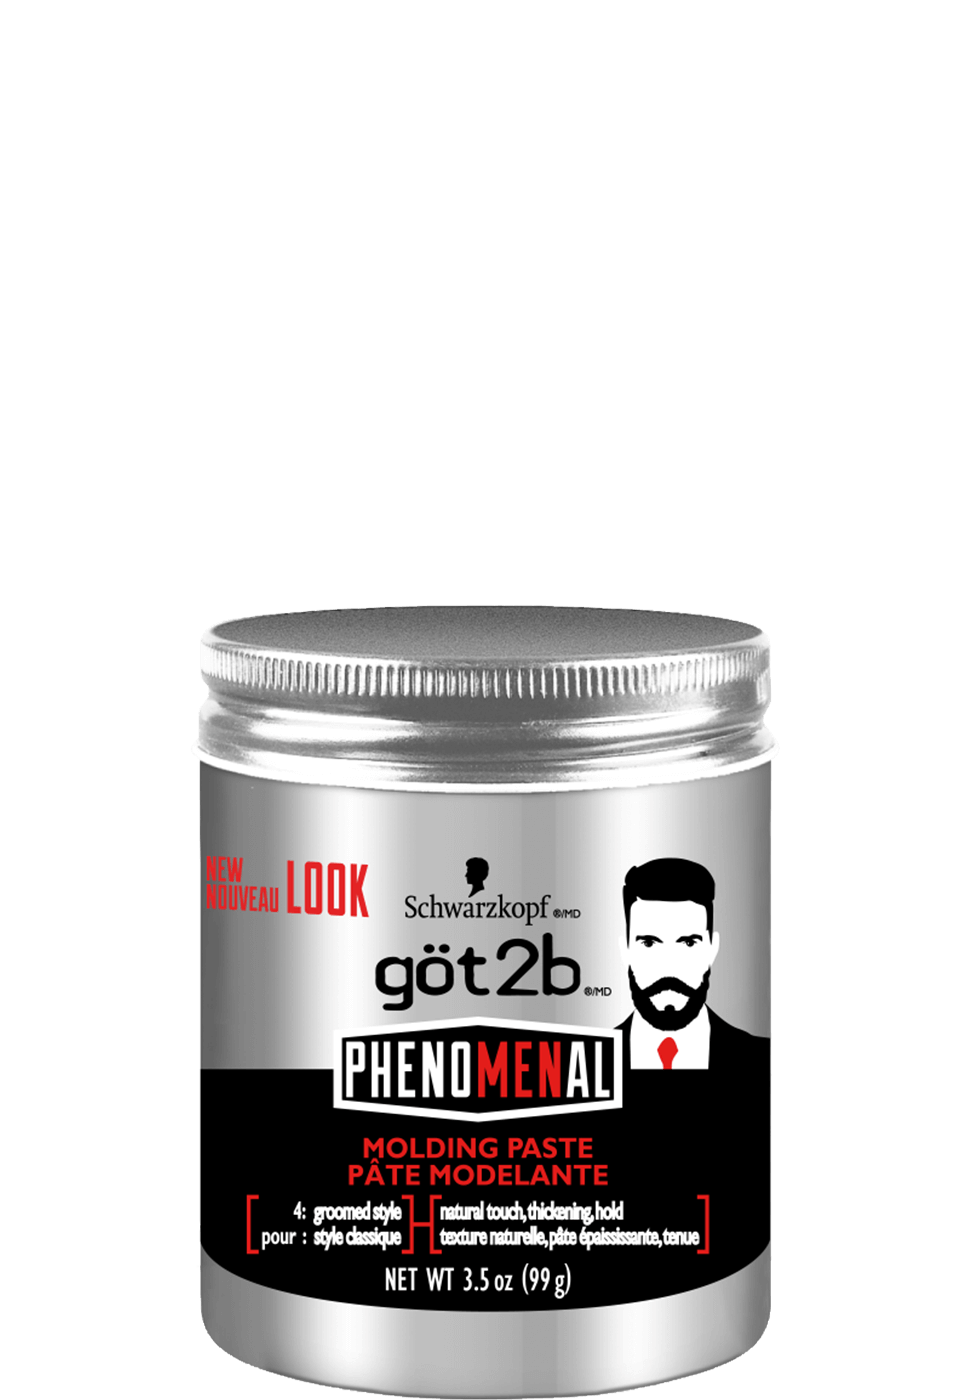 got2b_ca_phenomenal_molding_paste_970x1400